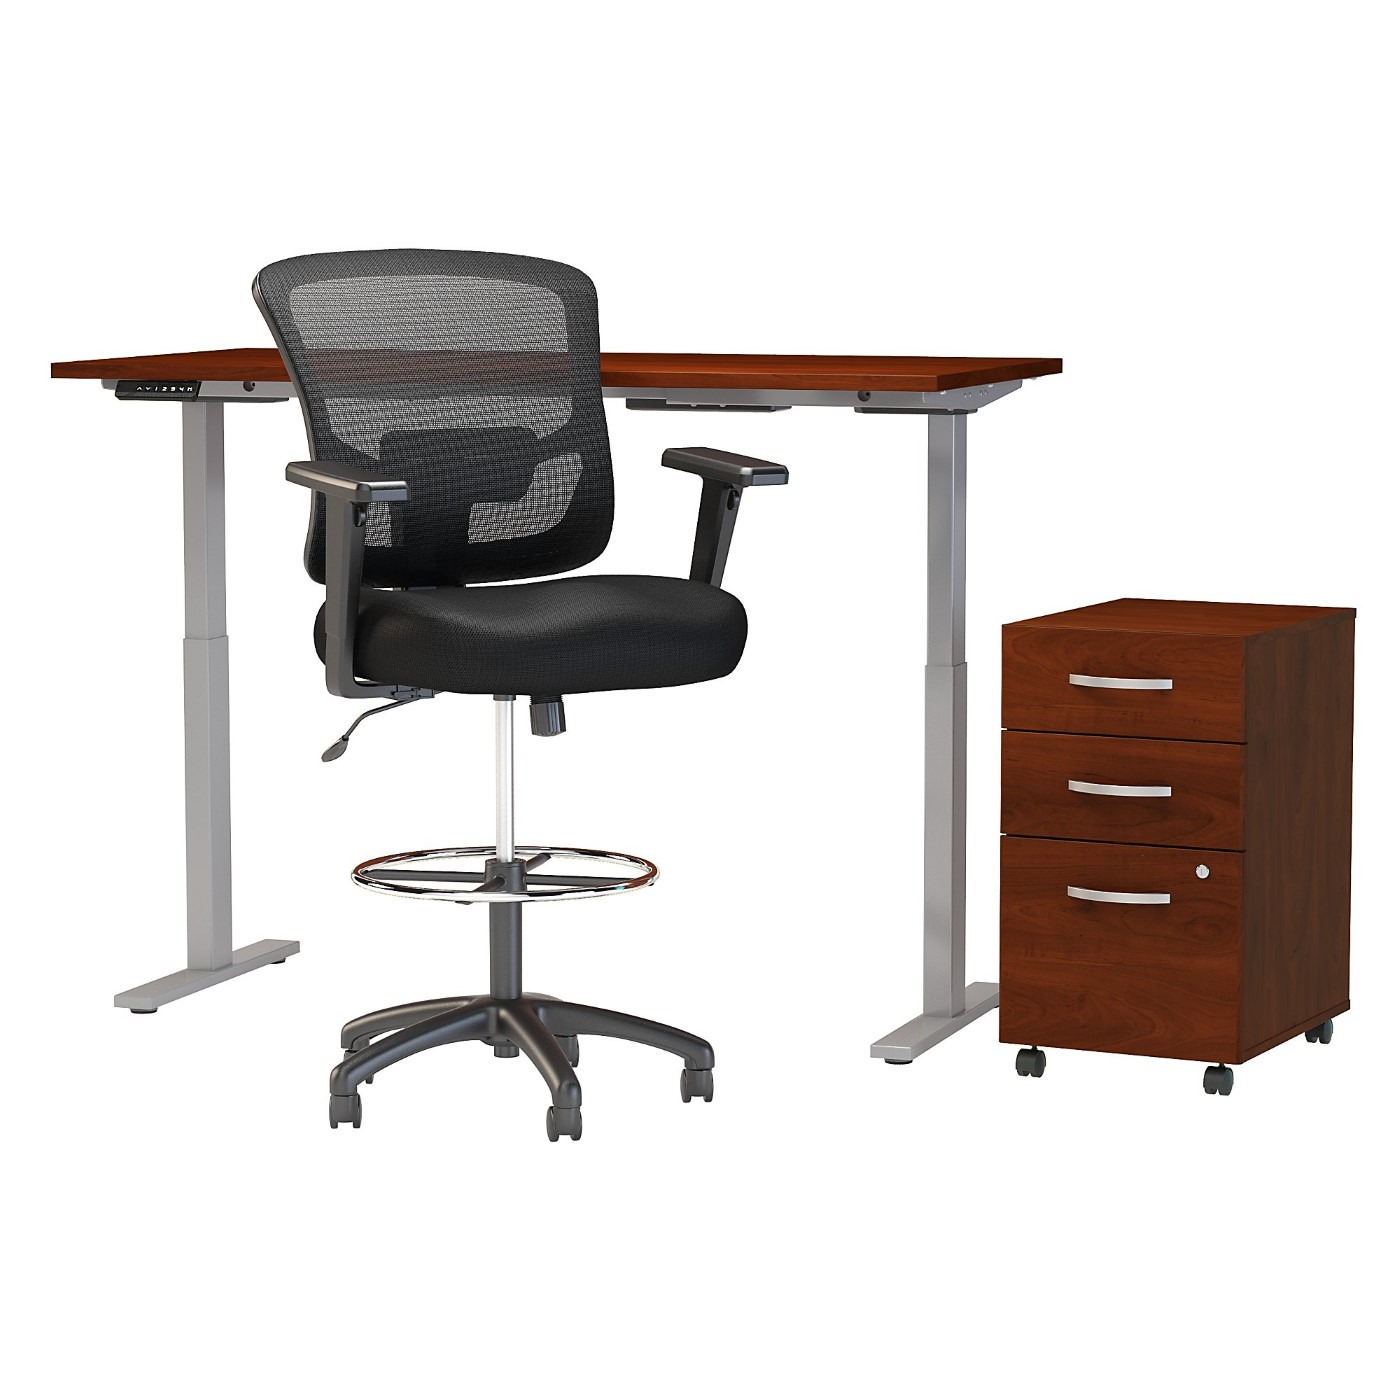 MOVE 60 SERIES BY BUSH BUSINESS FURNITURE 60W X 30D HEIGHT ADJUSTABLE STANDING DESK WITH STORAGE AND DRAFTING CHAIR. FREE SHIPPING